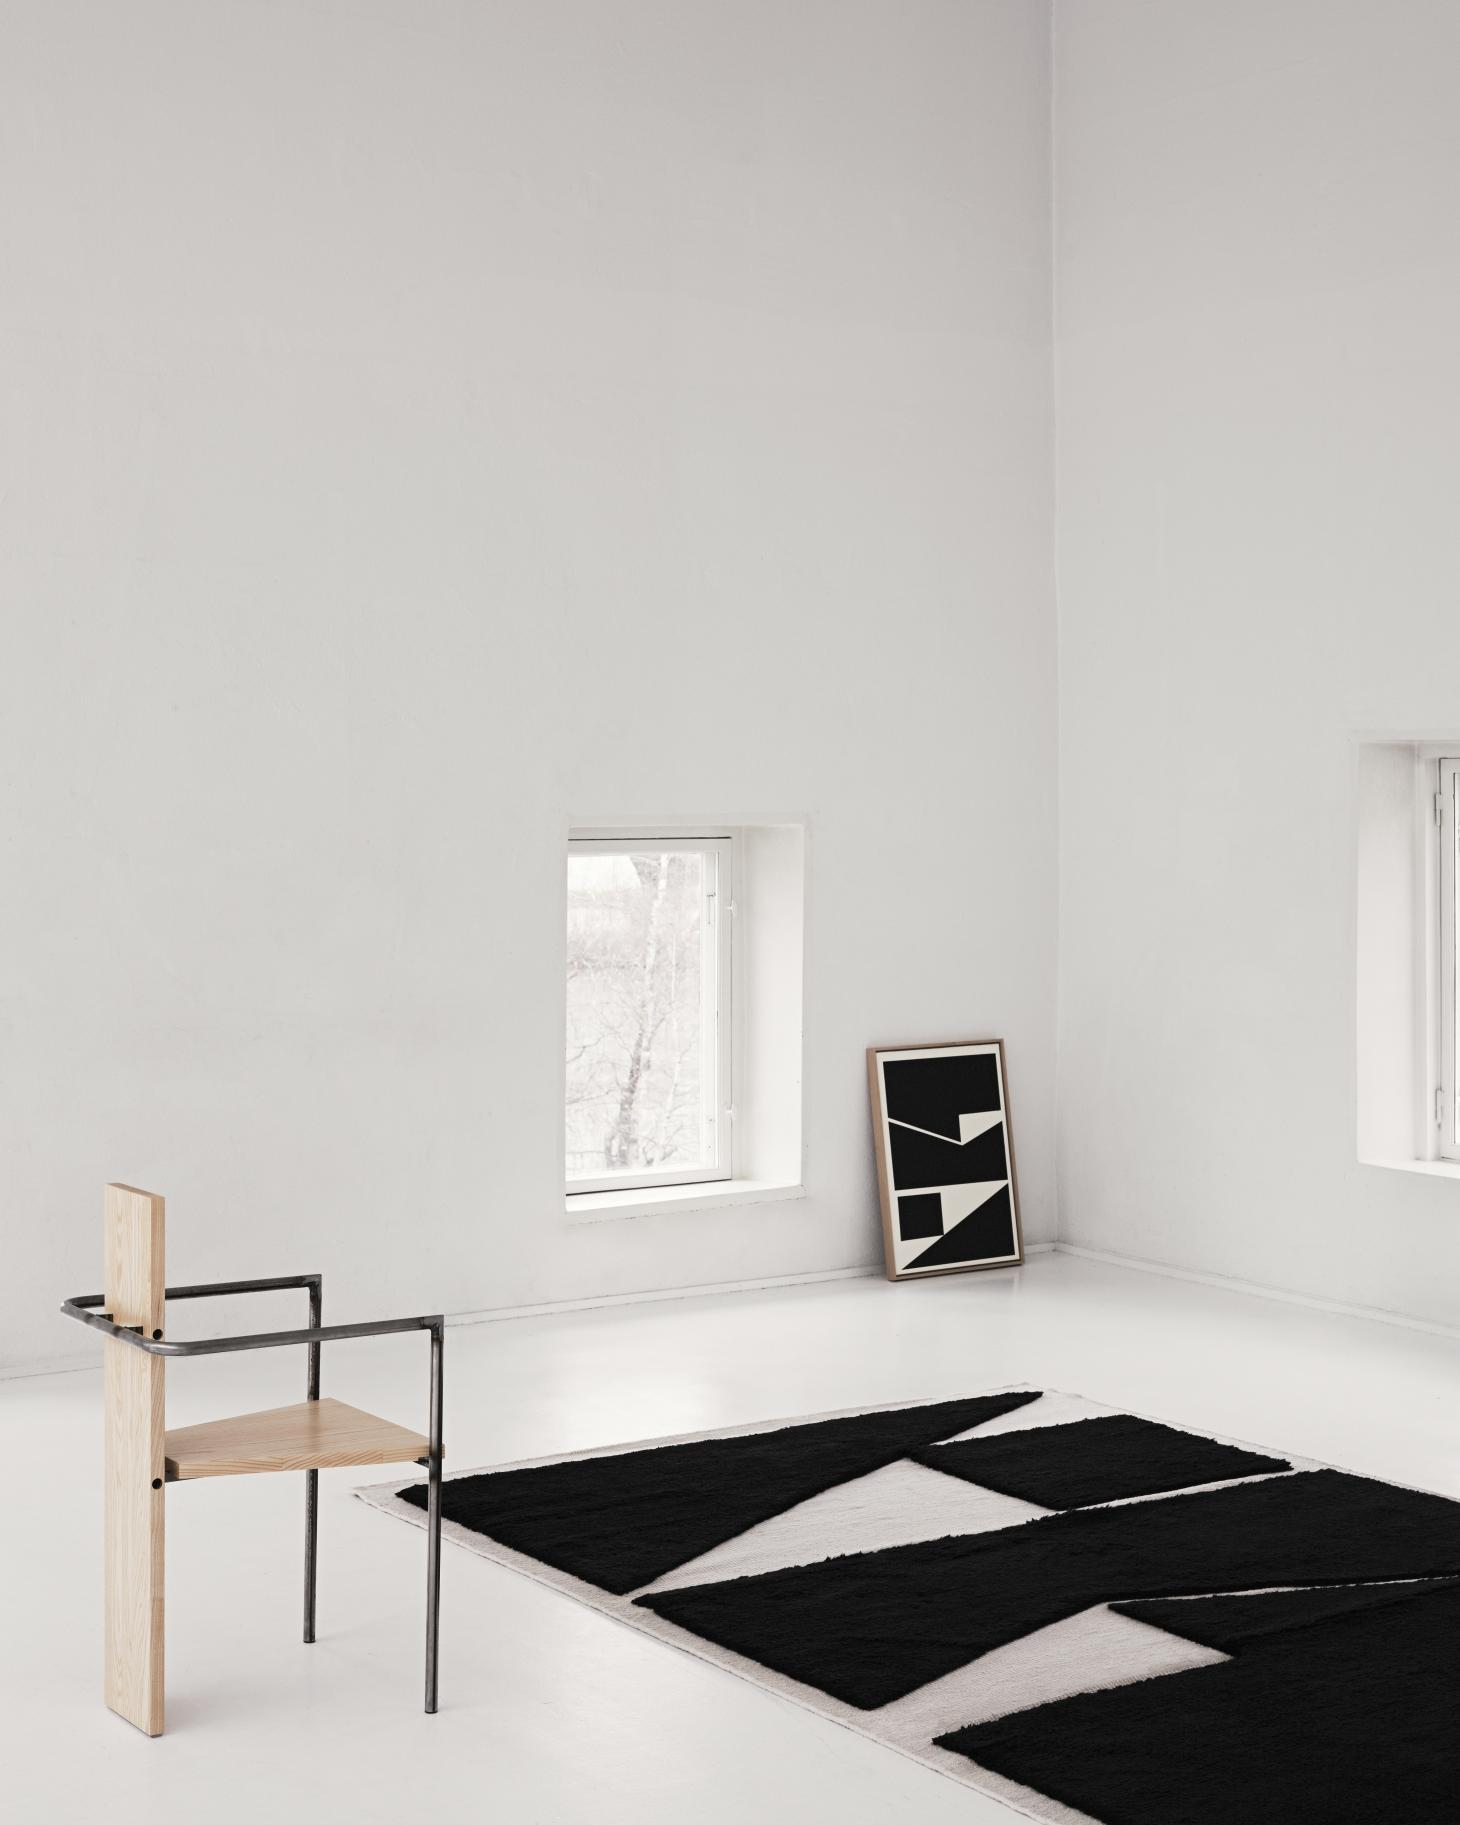 A geometric rug by Nordic Knots pictured in a minimalist white room with wooden furniture